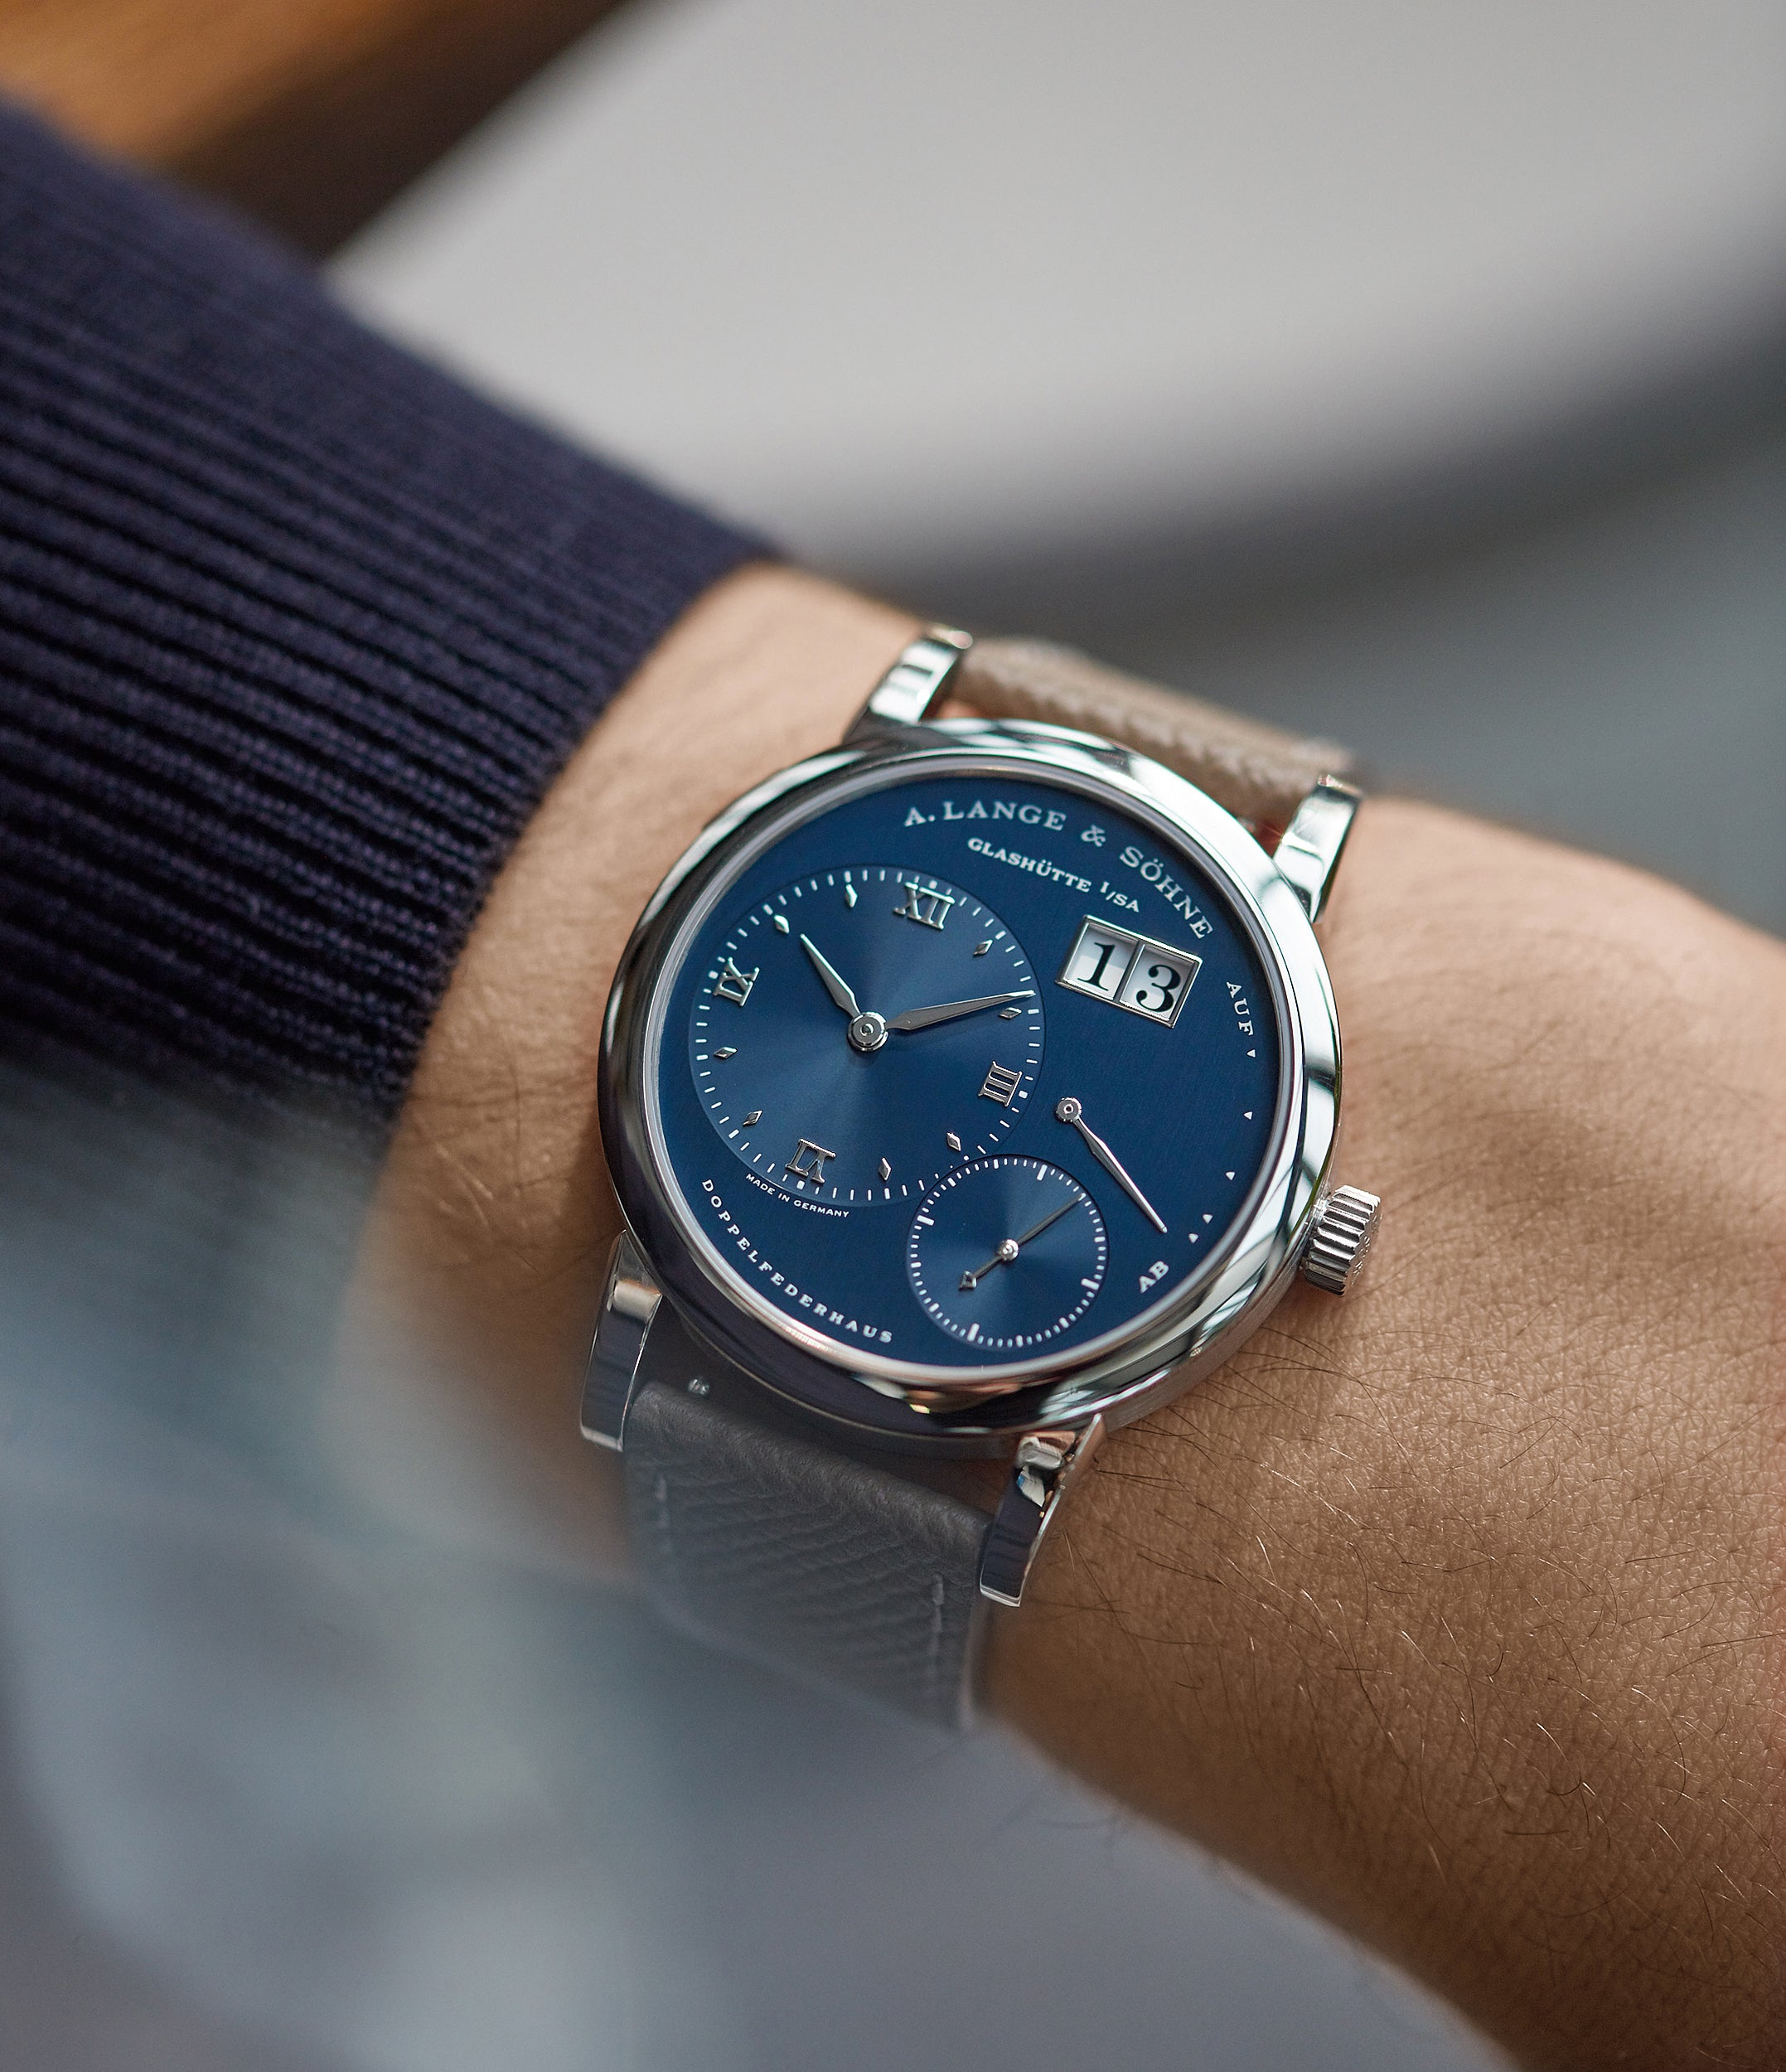 A. Lange & Sohne Lange 1 in The Balance of Symmetry and Asymmetry in Dial Design for A Collected Man London